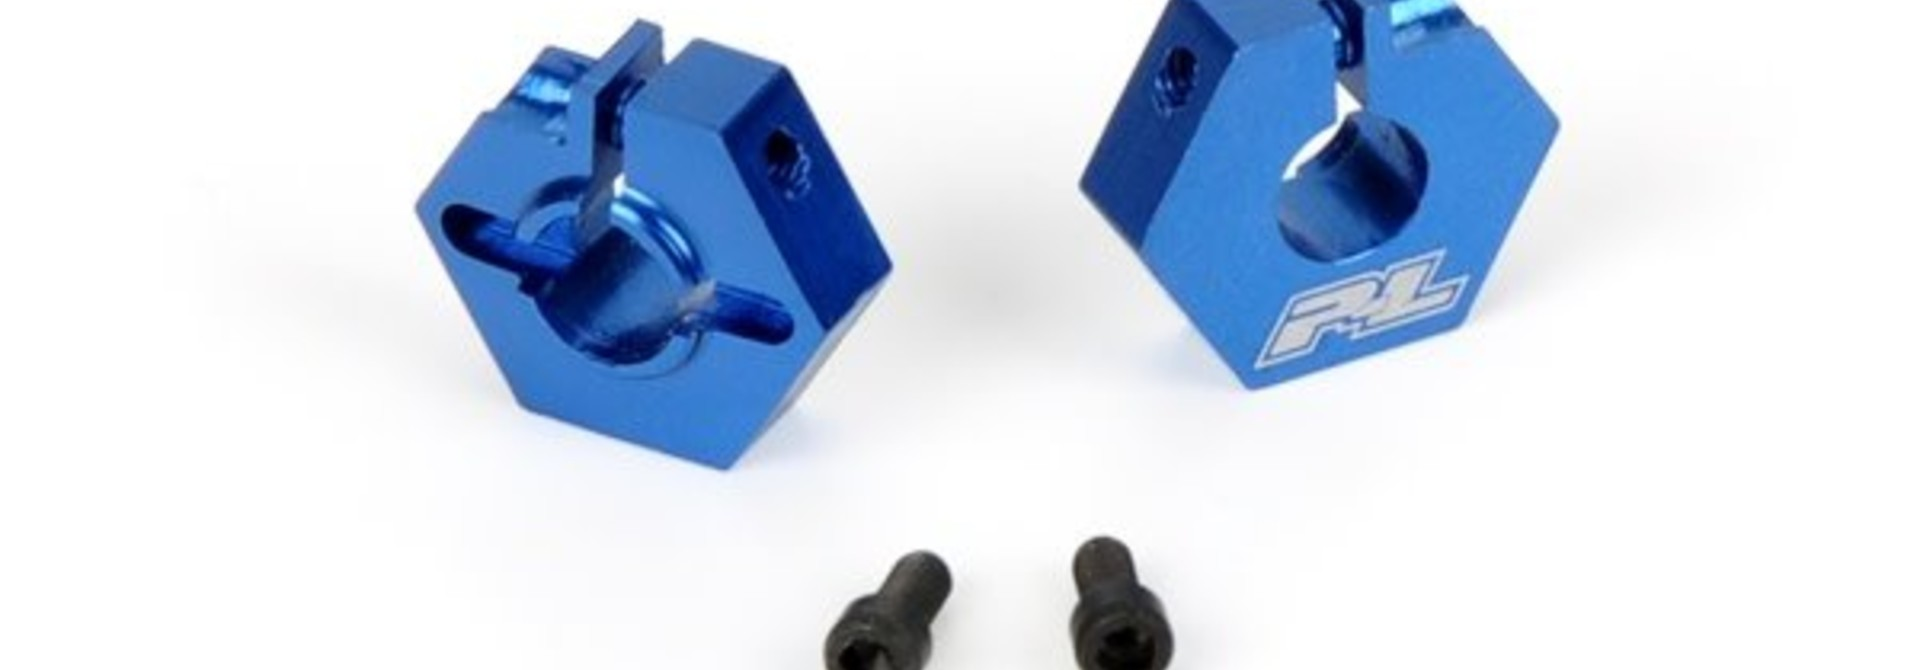 Aluminum 12mm Front Hex Adapters for B4.1, PR6076-00